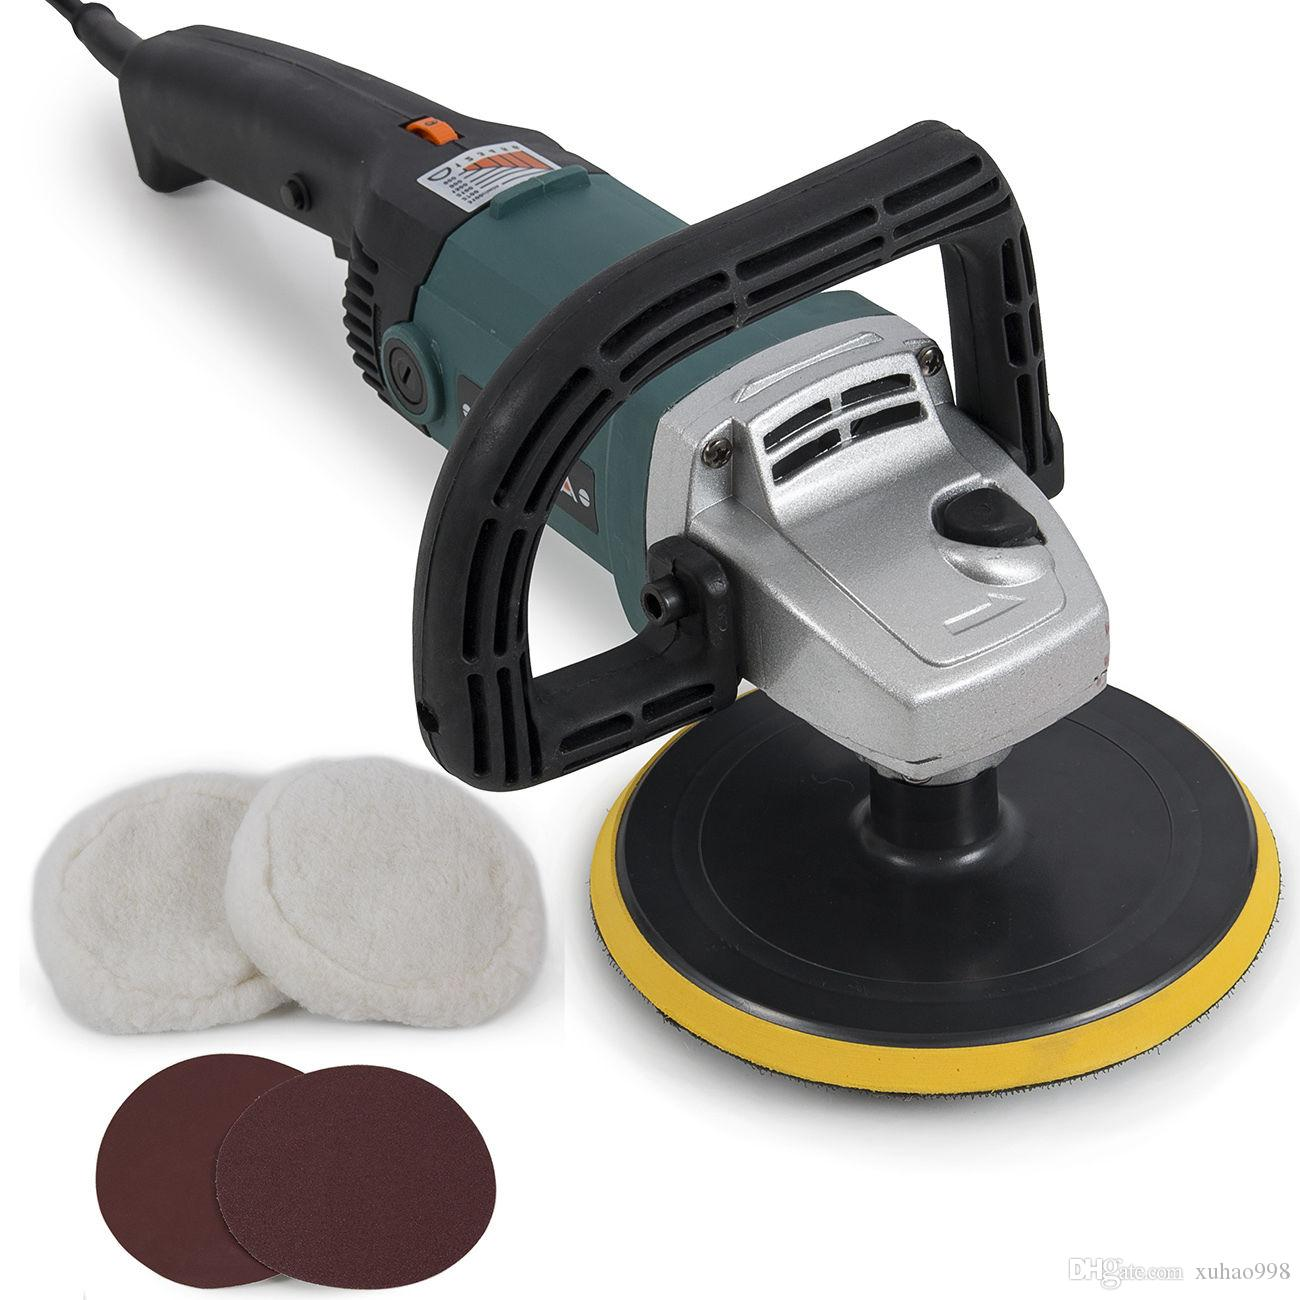 2019 New 7 034 Electric Variable Speed Car Polisher Buffer